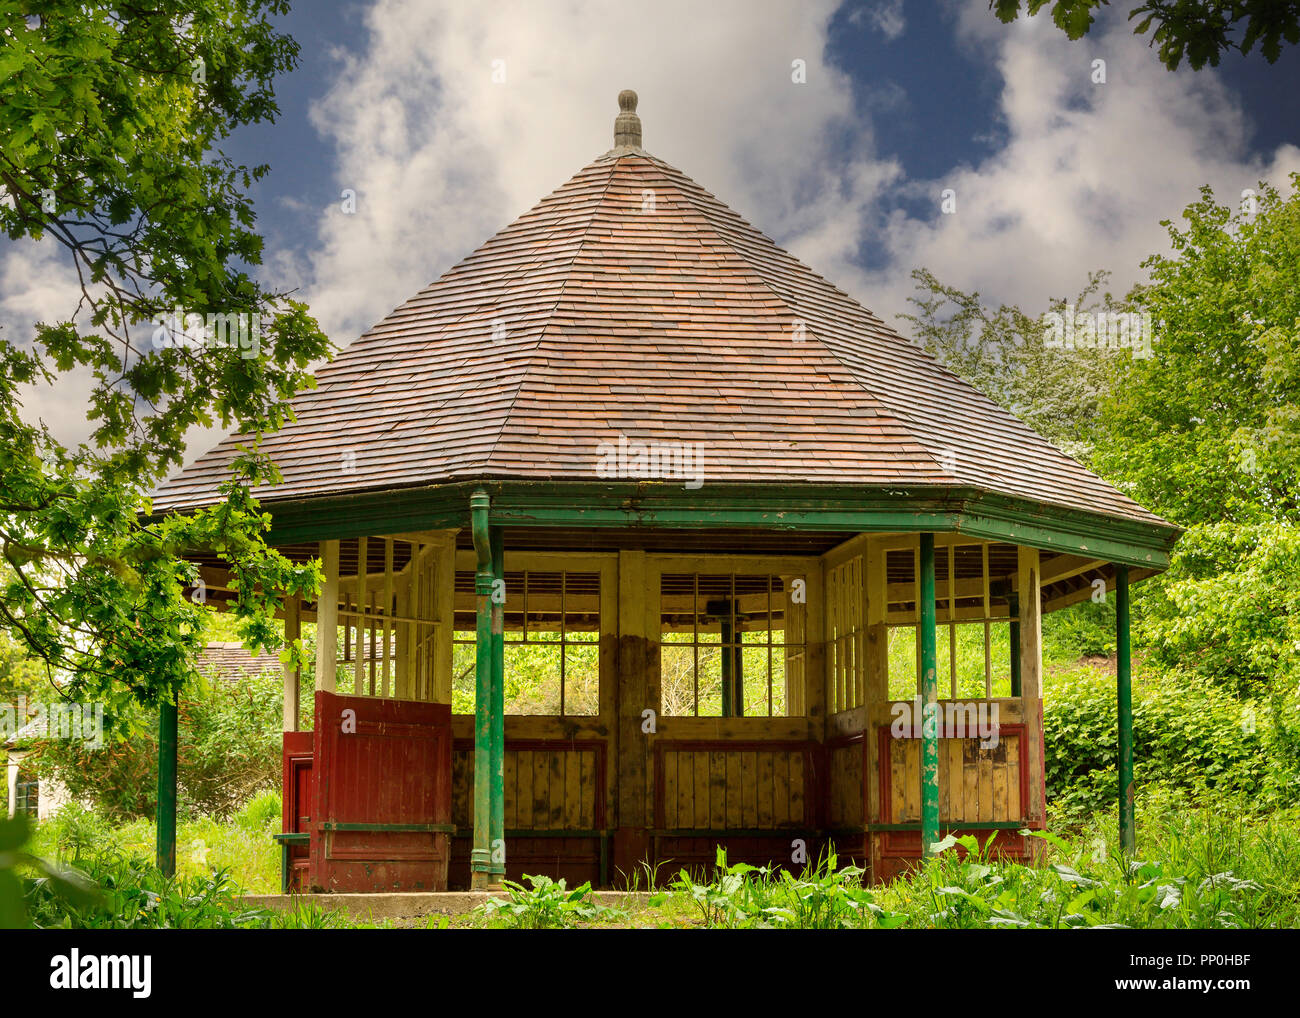 Images of restored buildings and structures at Avoncroft Museum in Bromsgrove, Worcestershire. - Stock Image